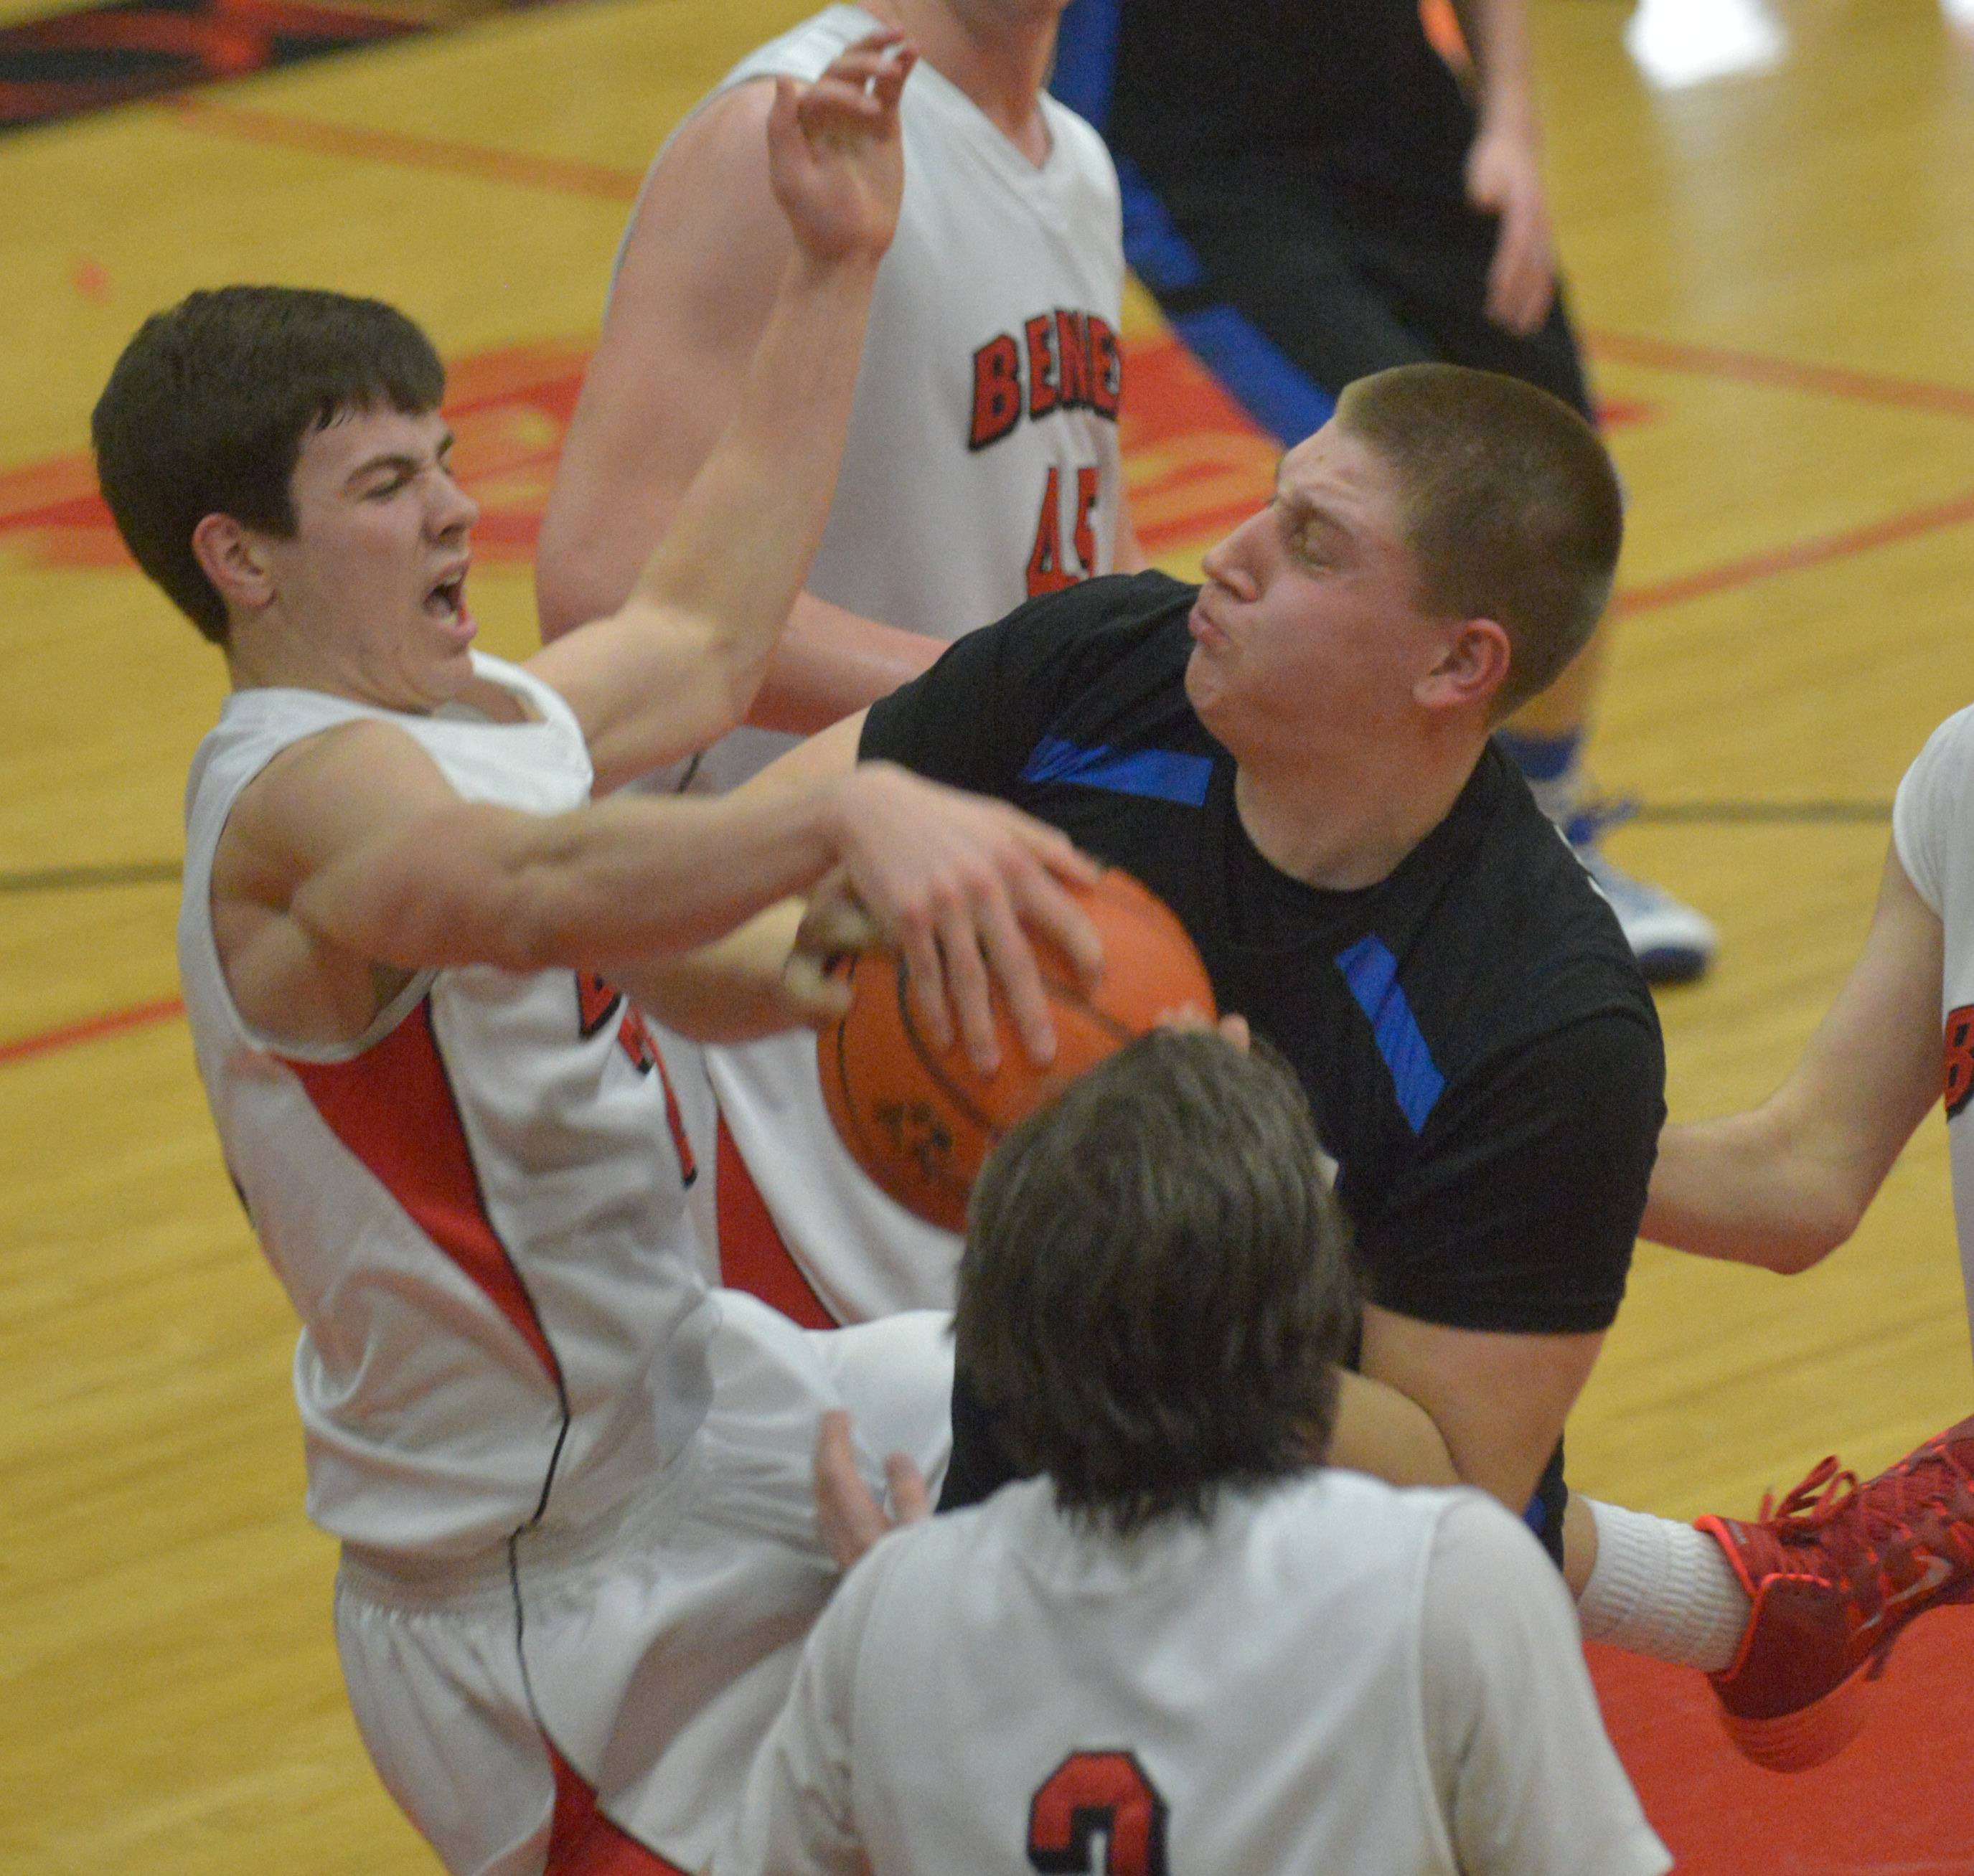 Images: Benet Academy vs. Geneva boys basketball